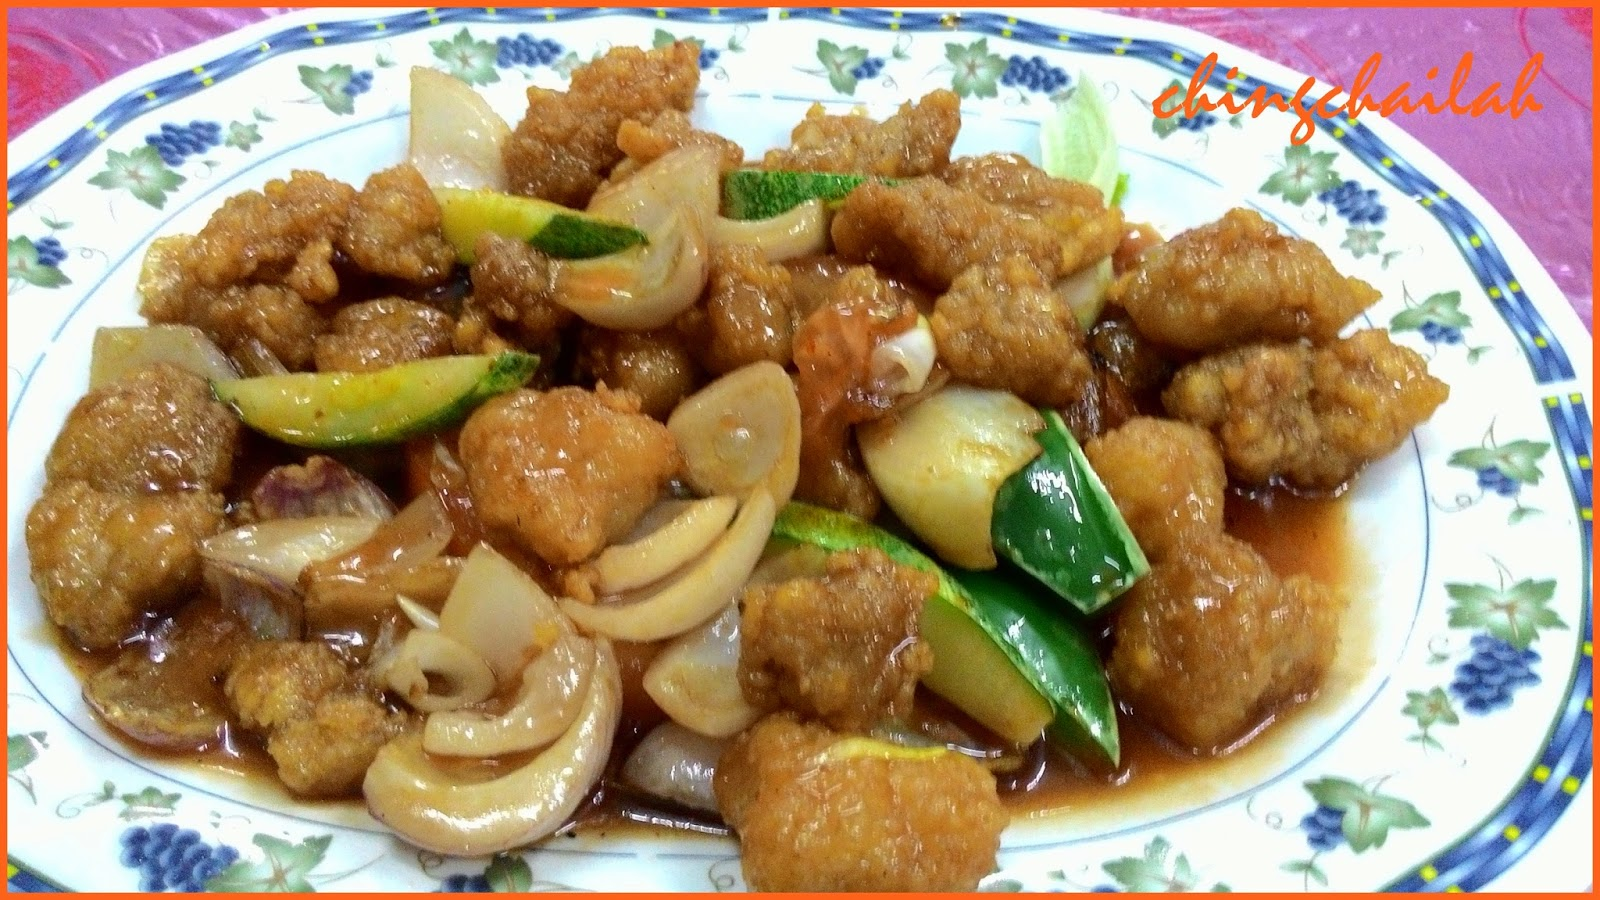 Simple Living In Nancy: DINNER ON 5TH DAY OF CHINESE NEW YEAR 2015 ...